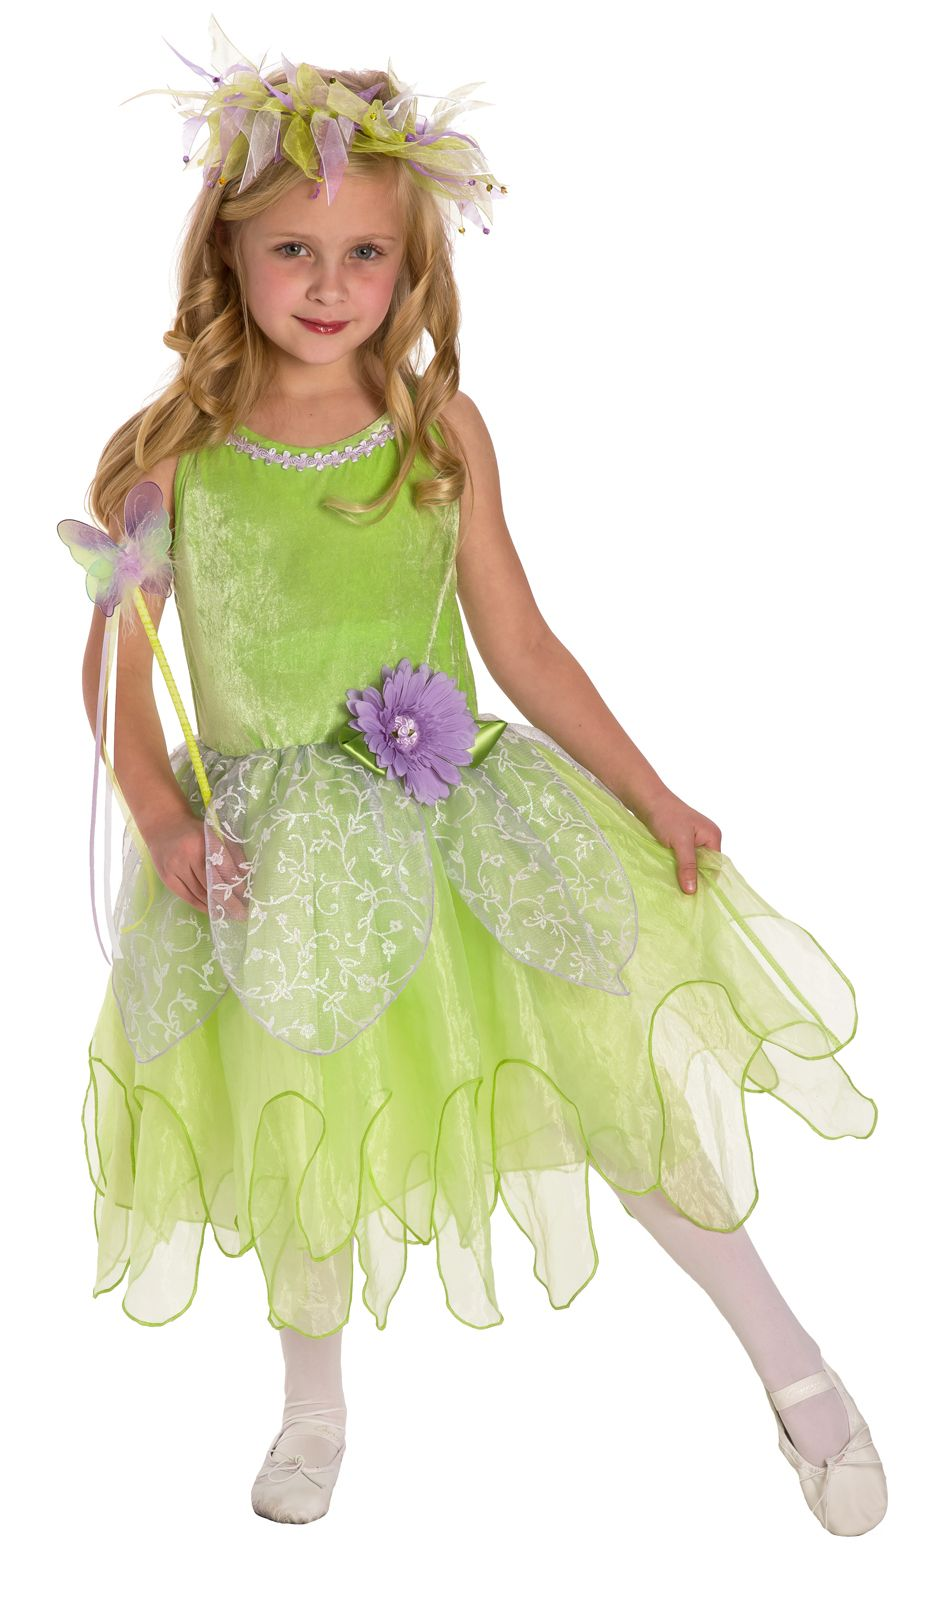 Deluxe Tinkerbell Fairy Dress Up Costume Girls Tinkerbelle Dress Dress Up Costumes Tinkerbell Dress Dress Up Outfits [ 1600 x 935 Pixel ]